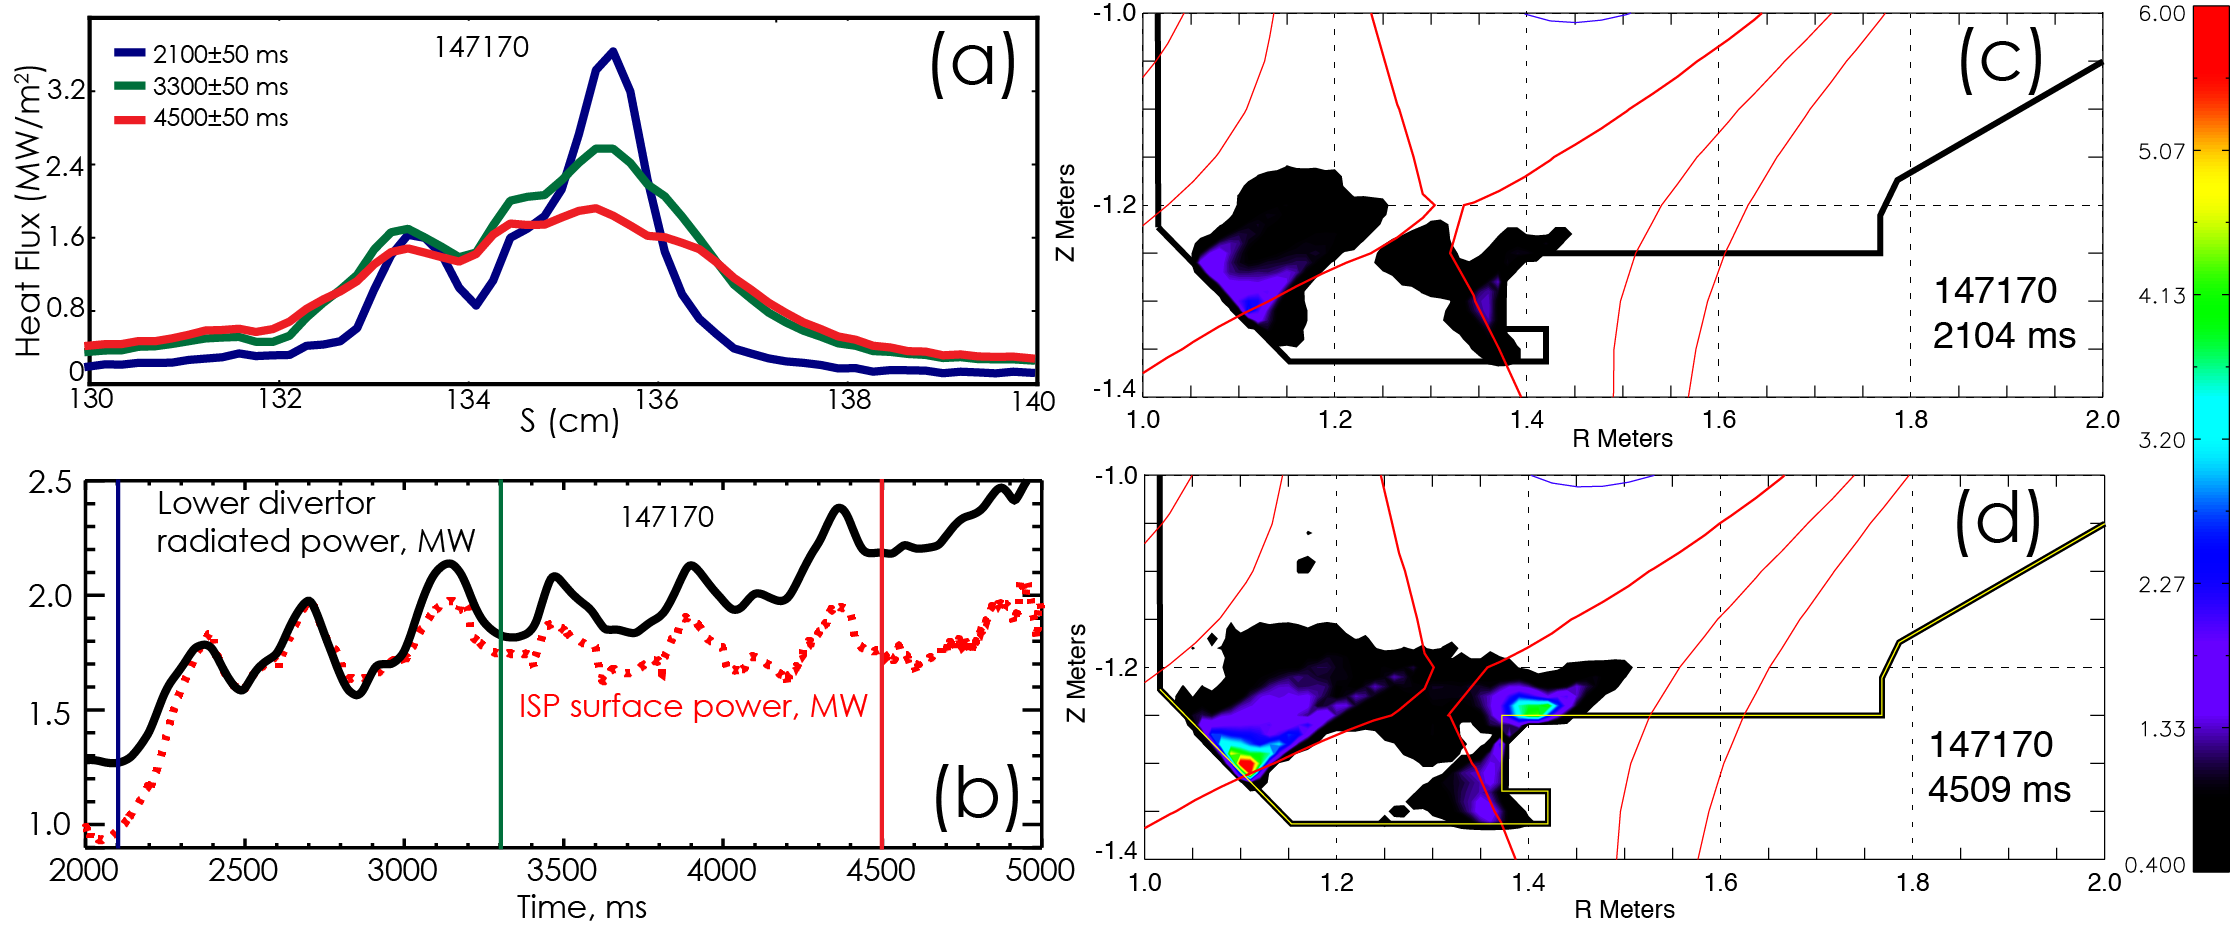 (a) Evolution of the ISP heat flux profile from temperature rise on divertor tile as measured by IRTV in ISS discharge 147170 with n=3 RMP ELM suppression. (b) Evolution of ISP surface power calculated from IRTV measurements and radiated power in lower divertor region from bolometer measurements. Vertical lines correspond to times in panel (a). 2D tomographic reconstruction of CIII emission in the lower divertor in shot 147170 at 2104 ms (c) and 4509 ms (d) assuming toroidal symmetry.